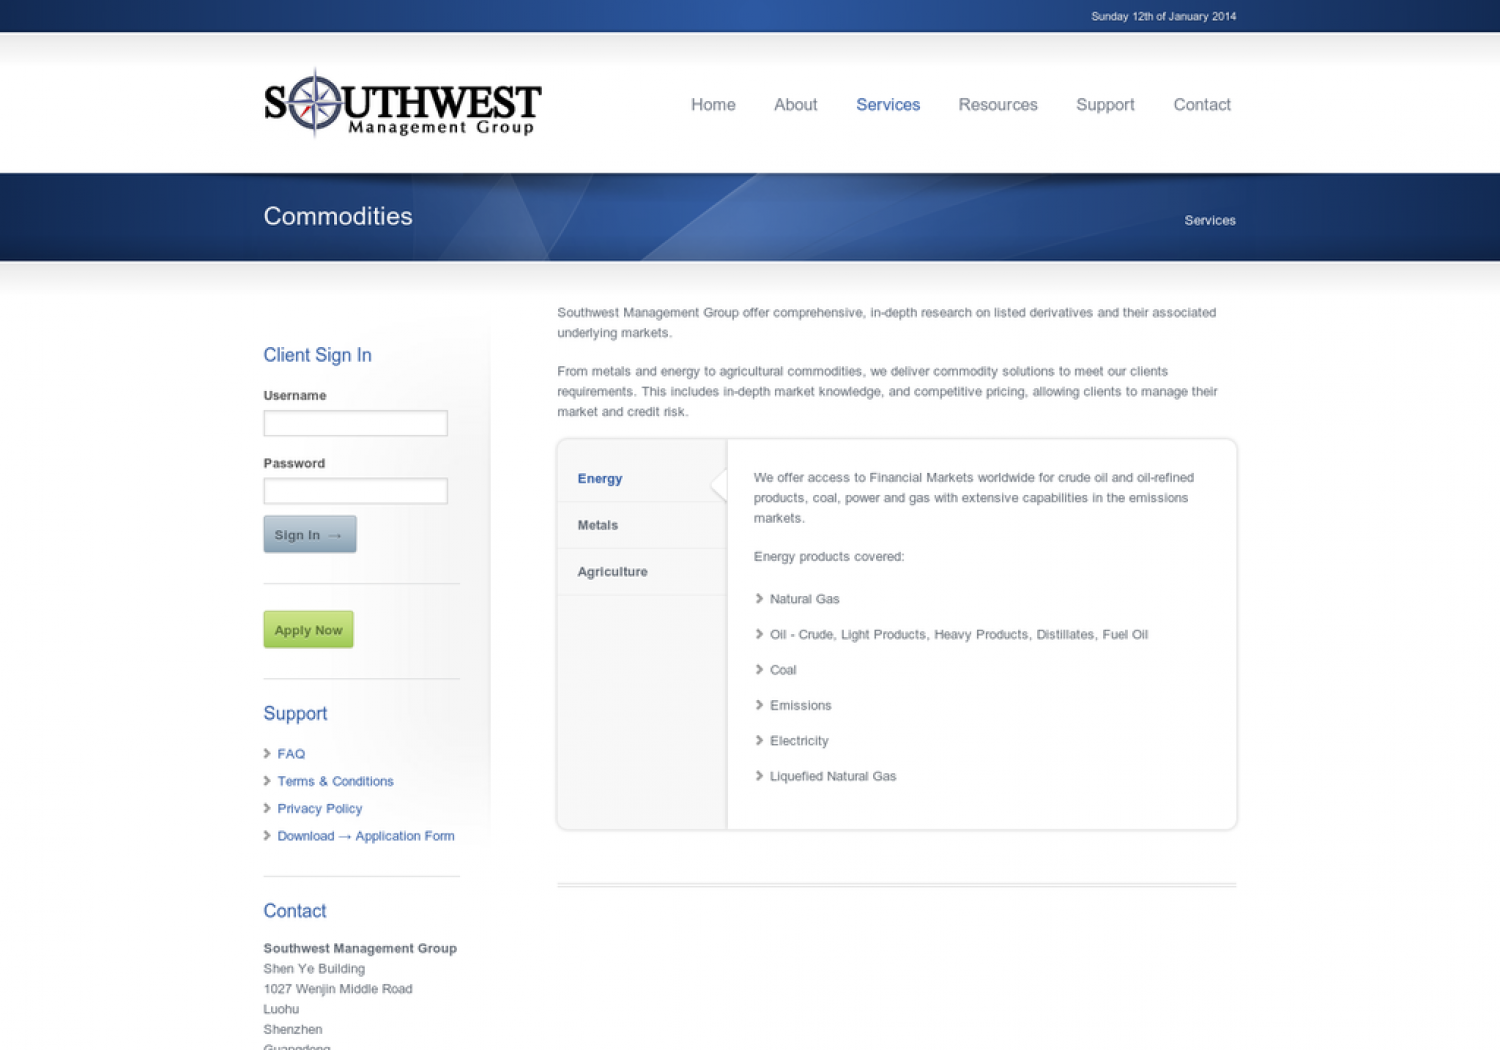 Southwest Management Group: Commodities Infographic